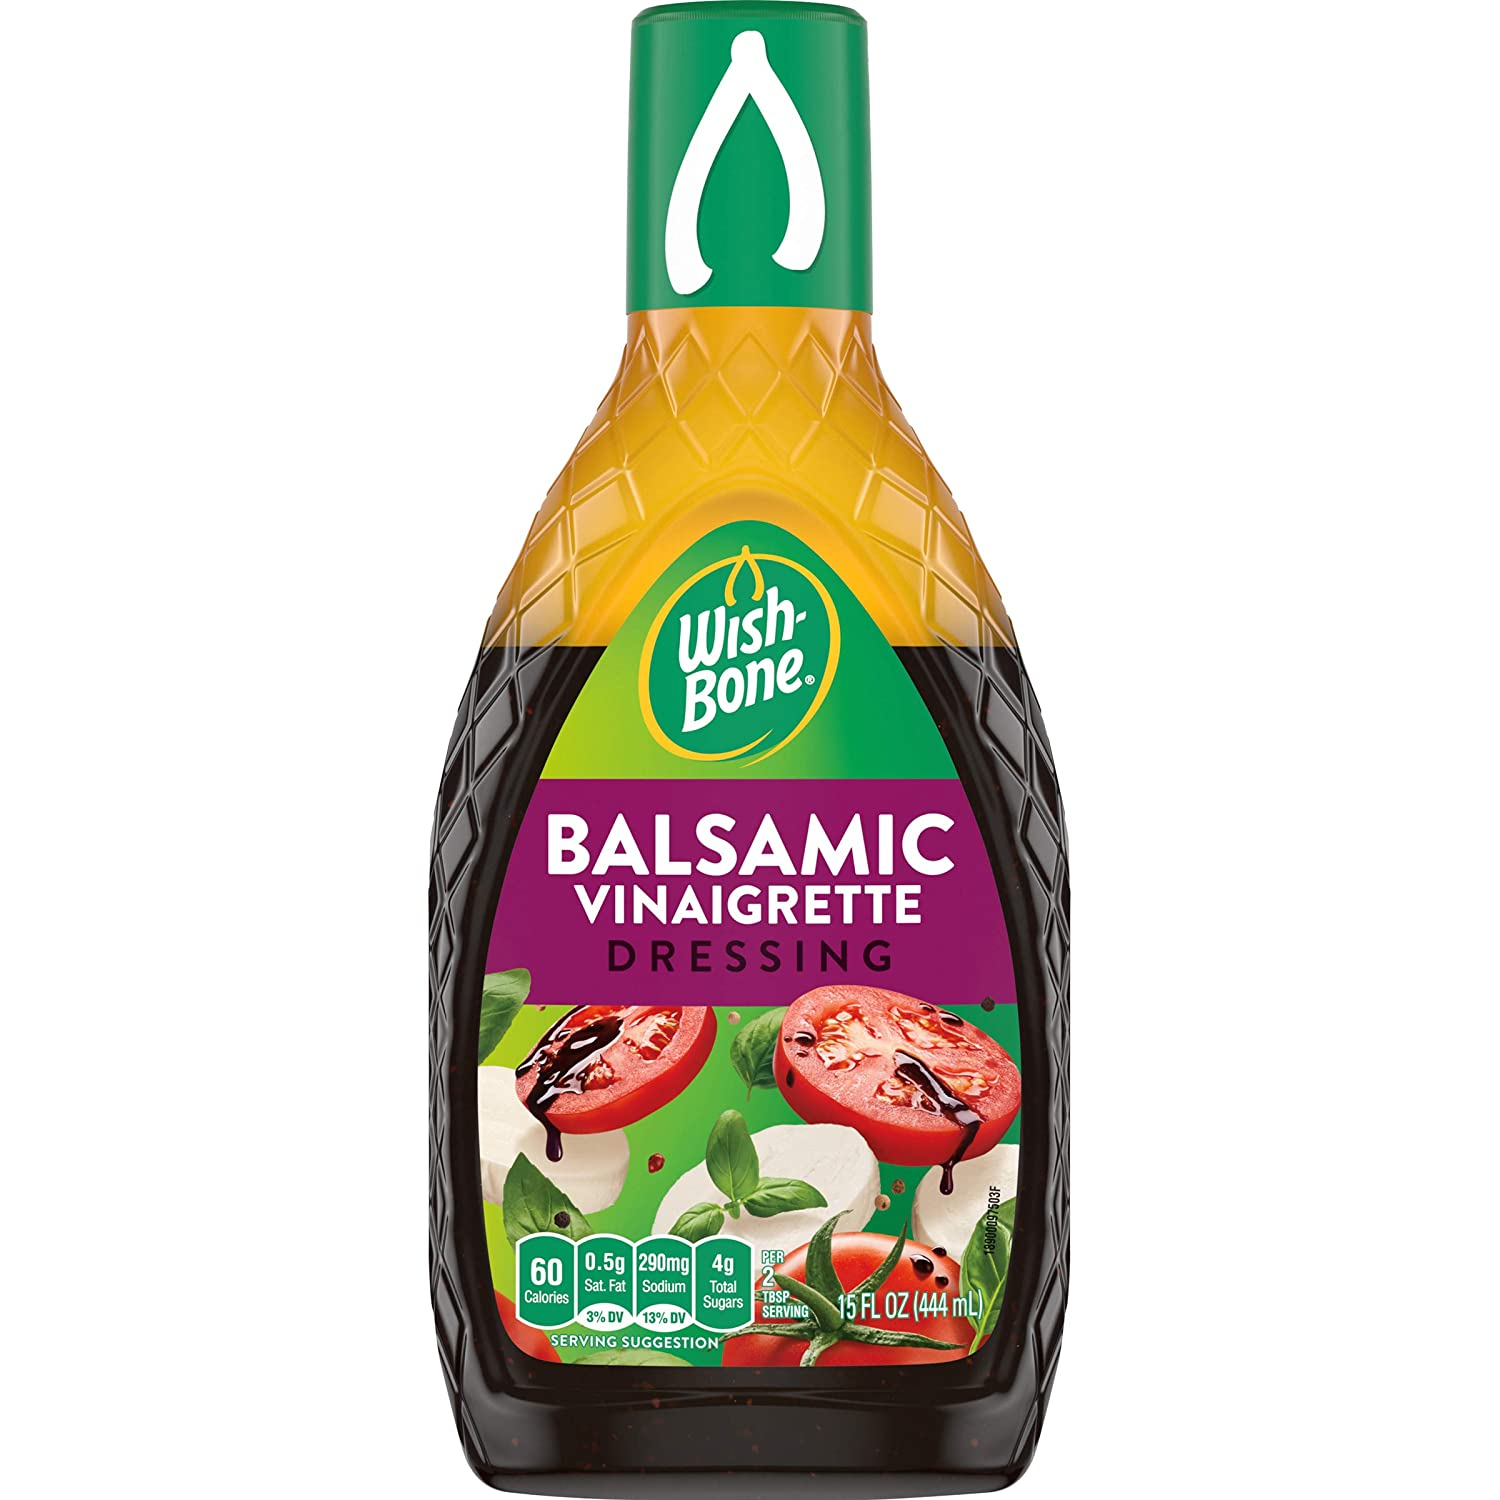 Wish-Bone Balsamic Vinaigrette Dressing, 15 FL OZ